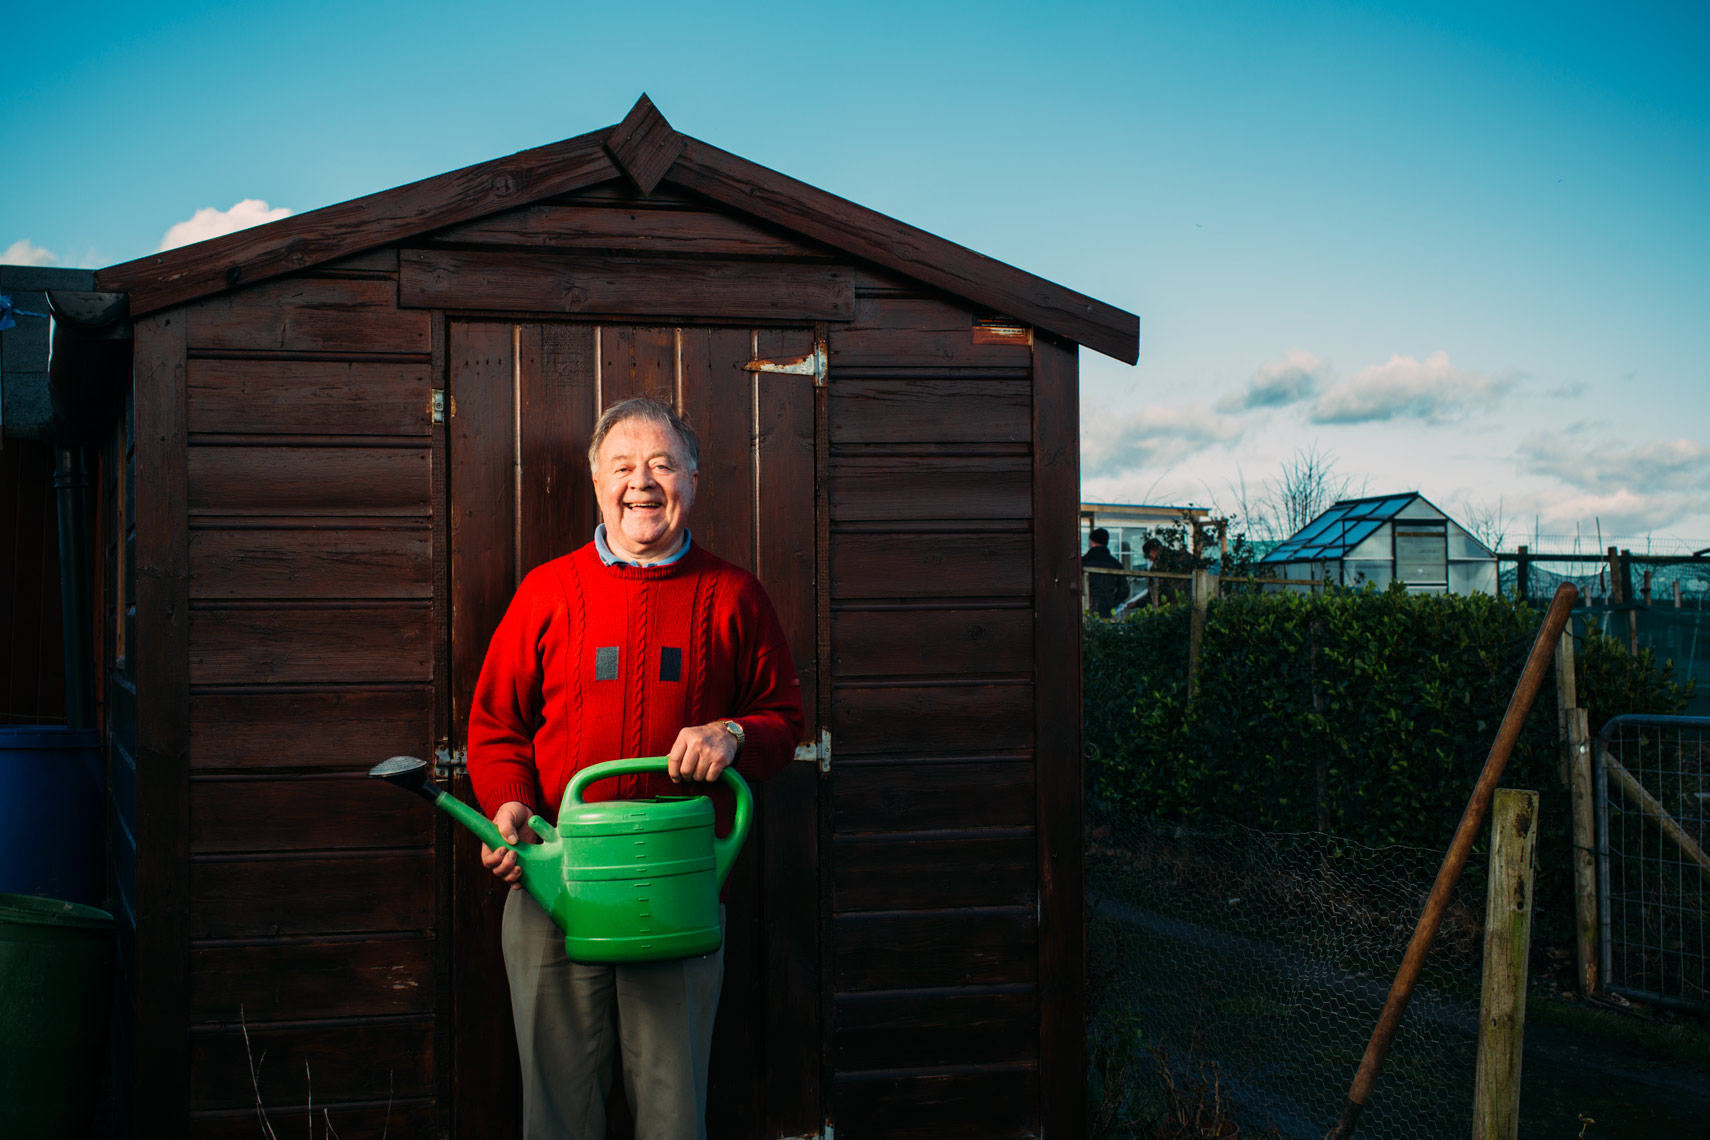 laughing man with red jumper and green watering can stands beside shed